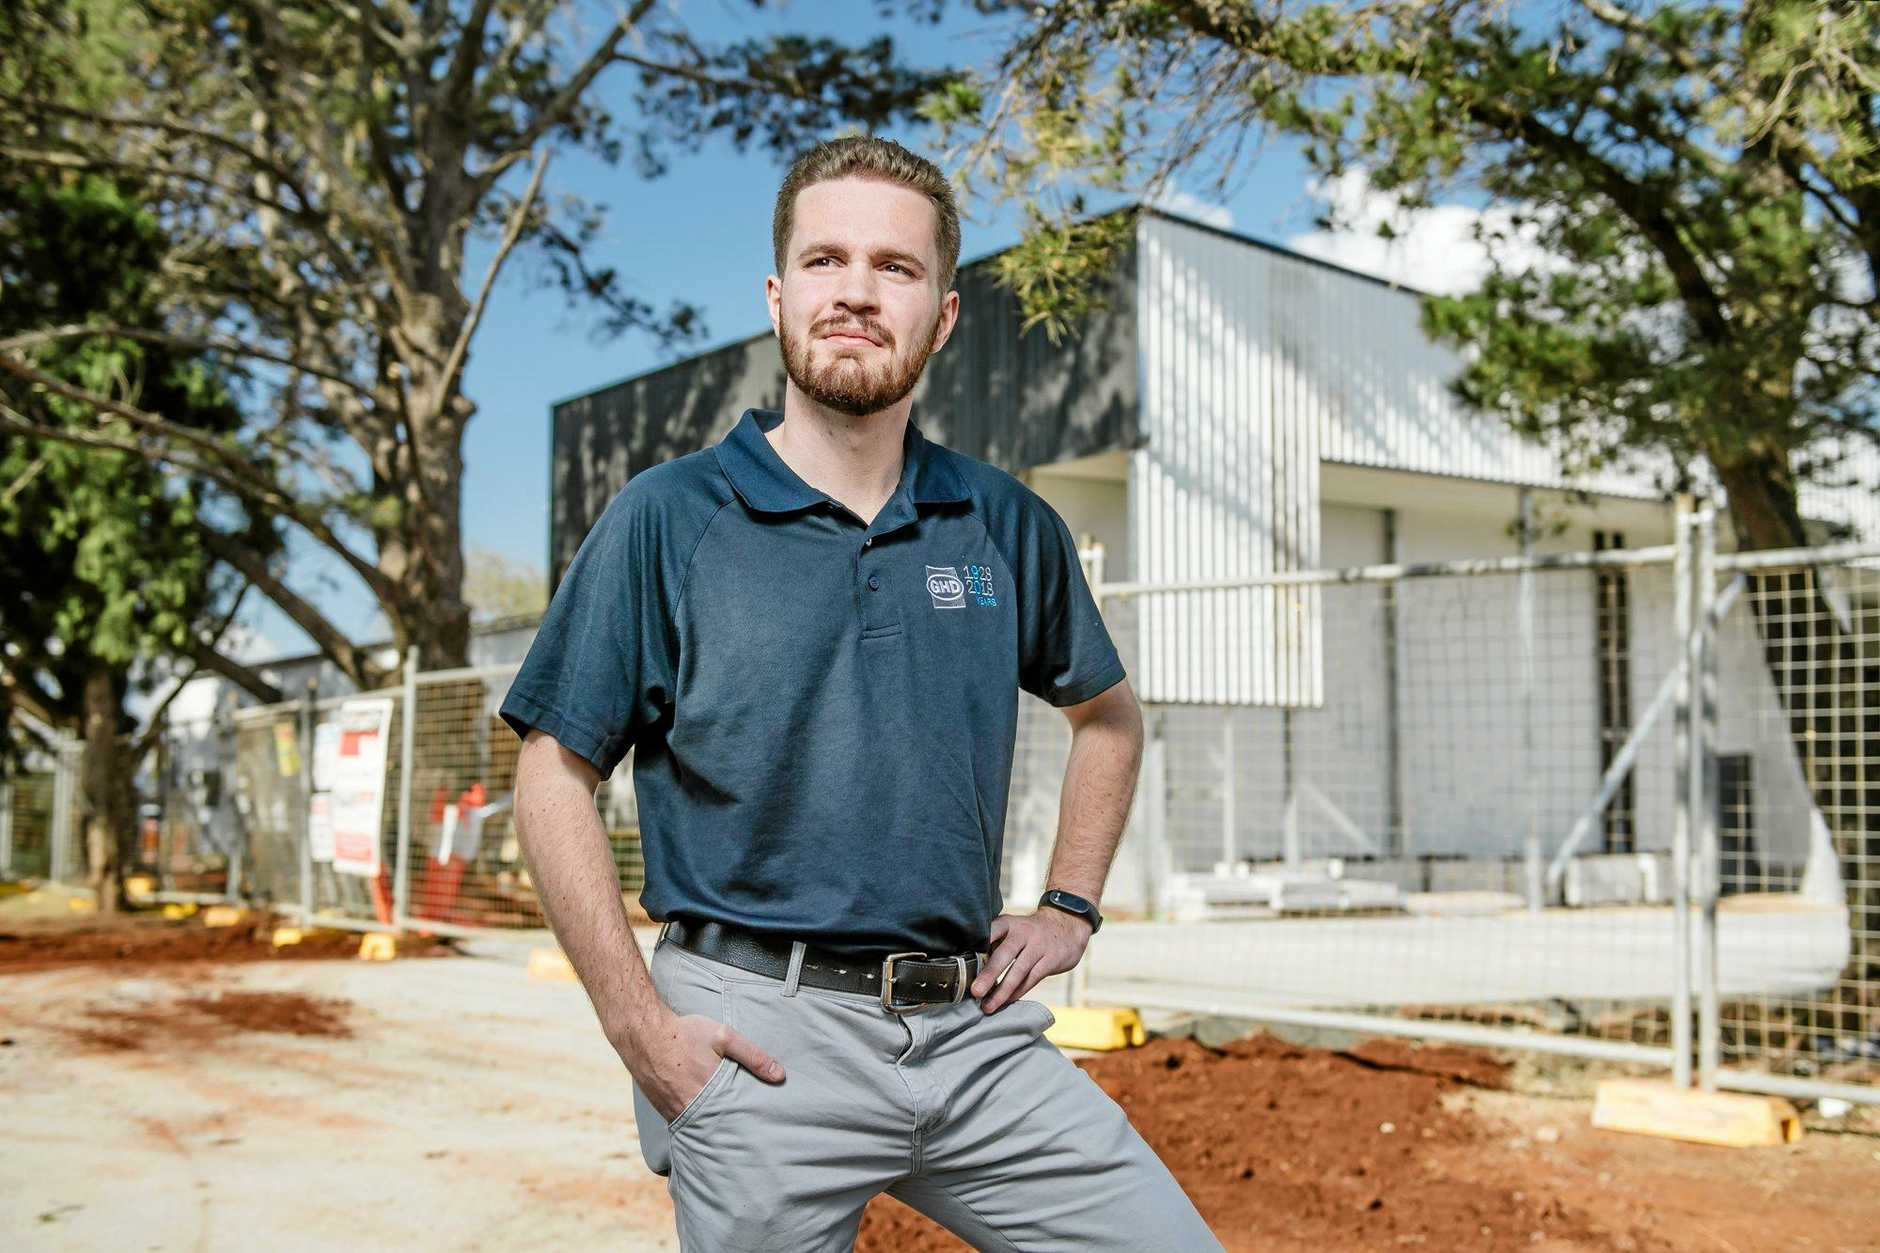 USQ student Aidan Train will feature in a booklet documenting the difference universities make to regional communities.